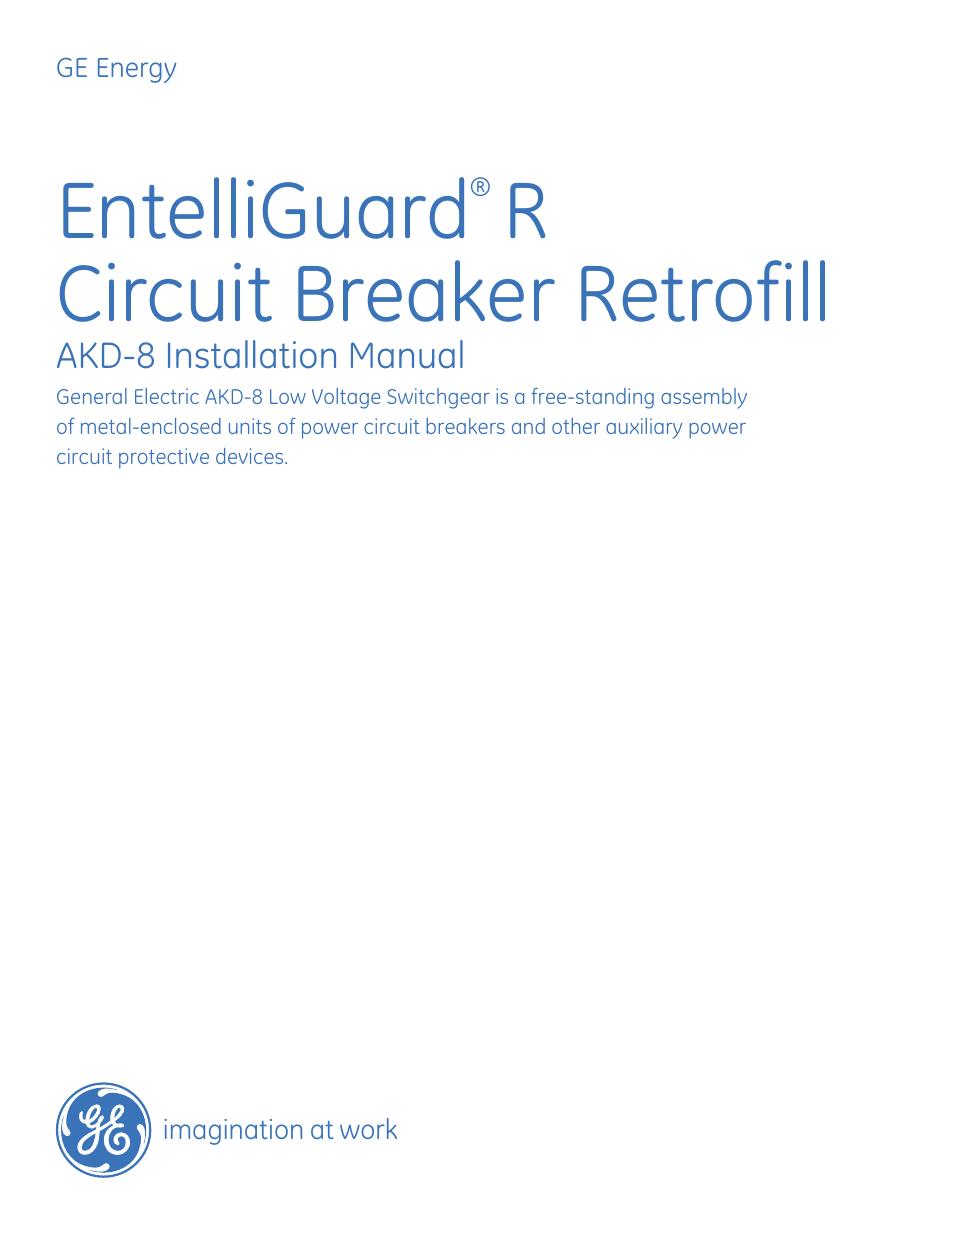 Ge Industrial Solutions Entelliguard R Akd 8 User Manual 45 Pages Working Of Circuit Breakers